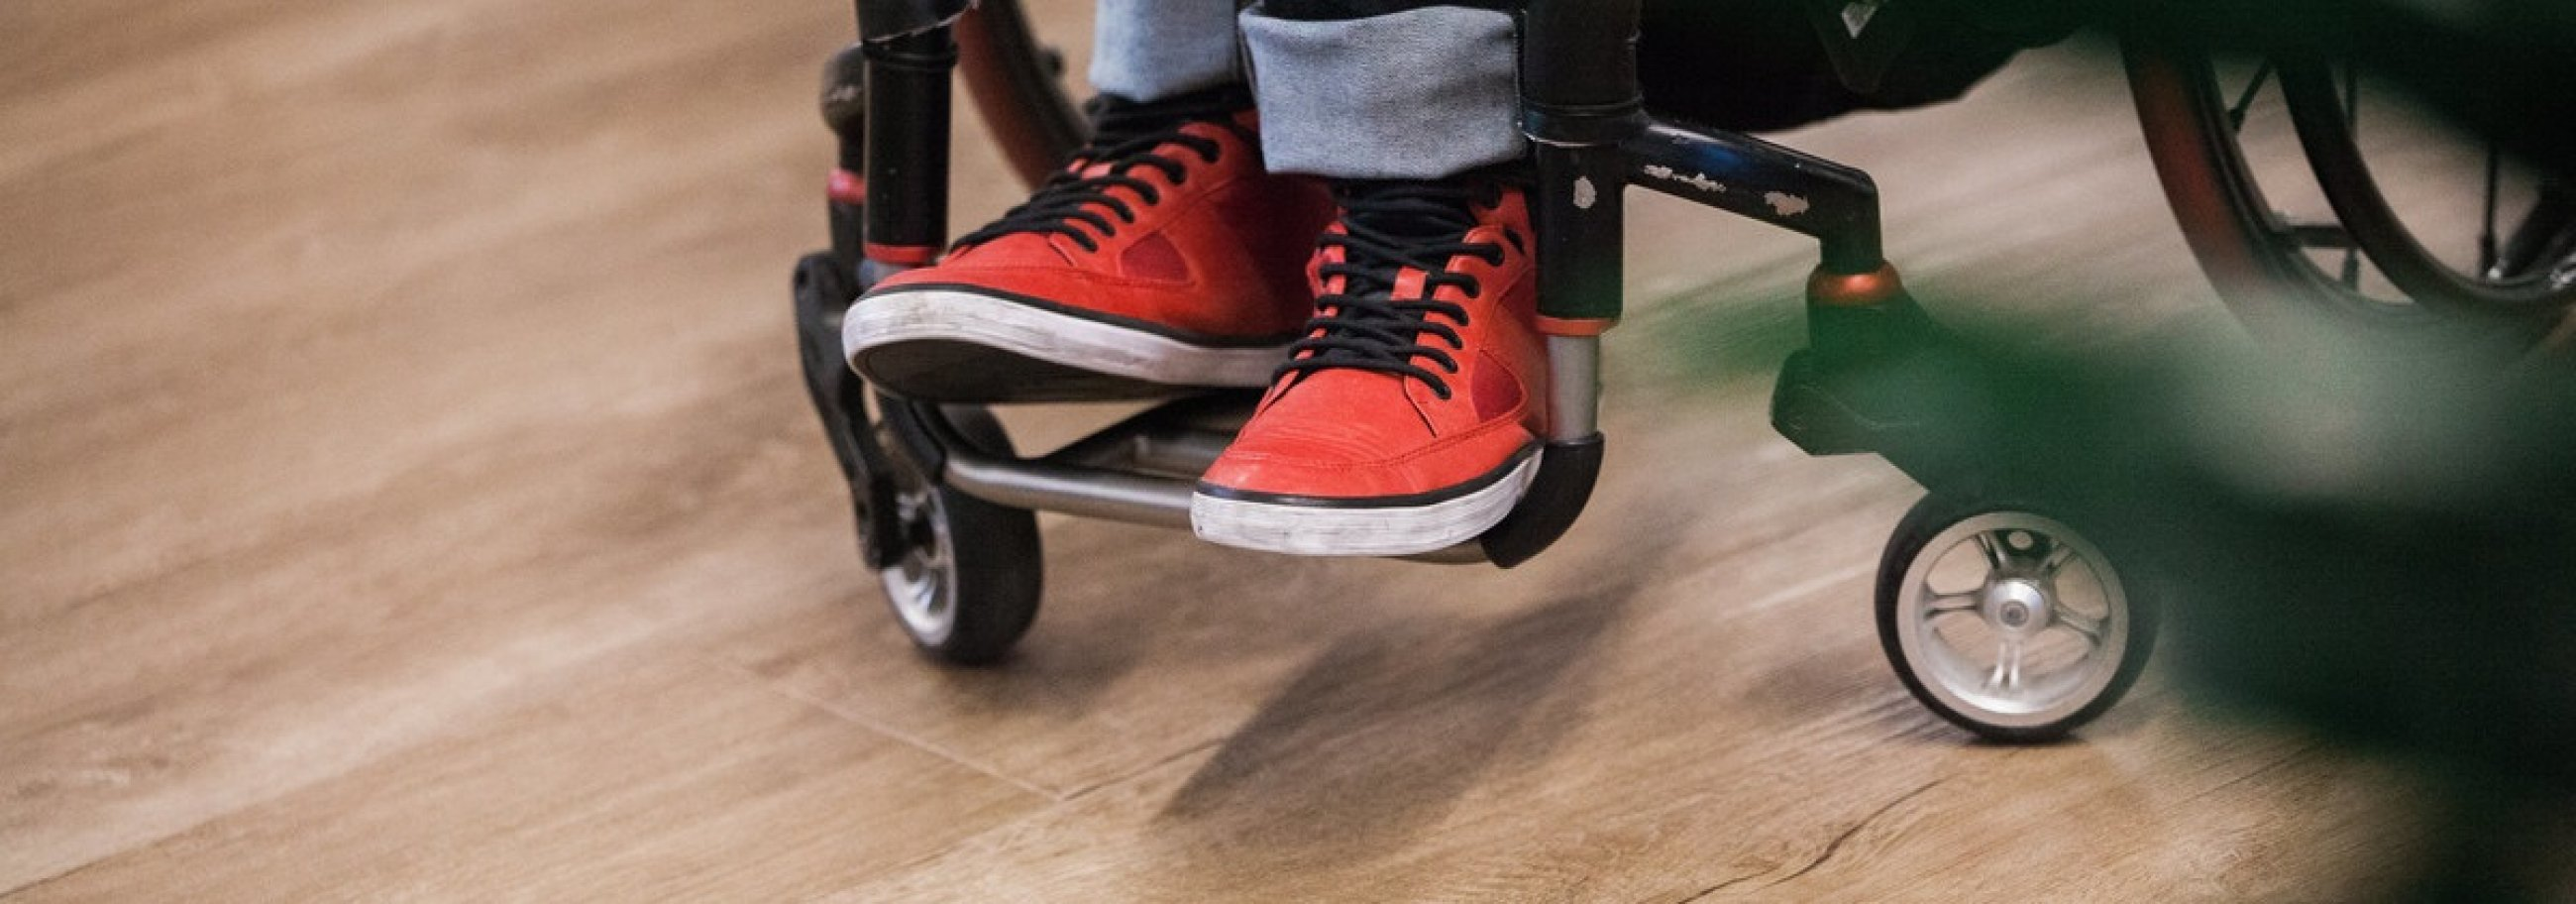 wheelchair wheels and red sneakers